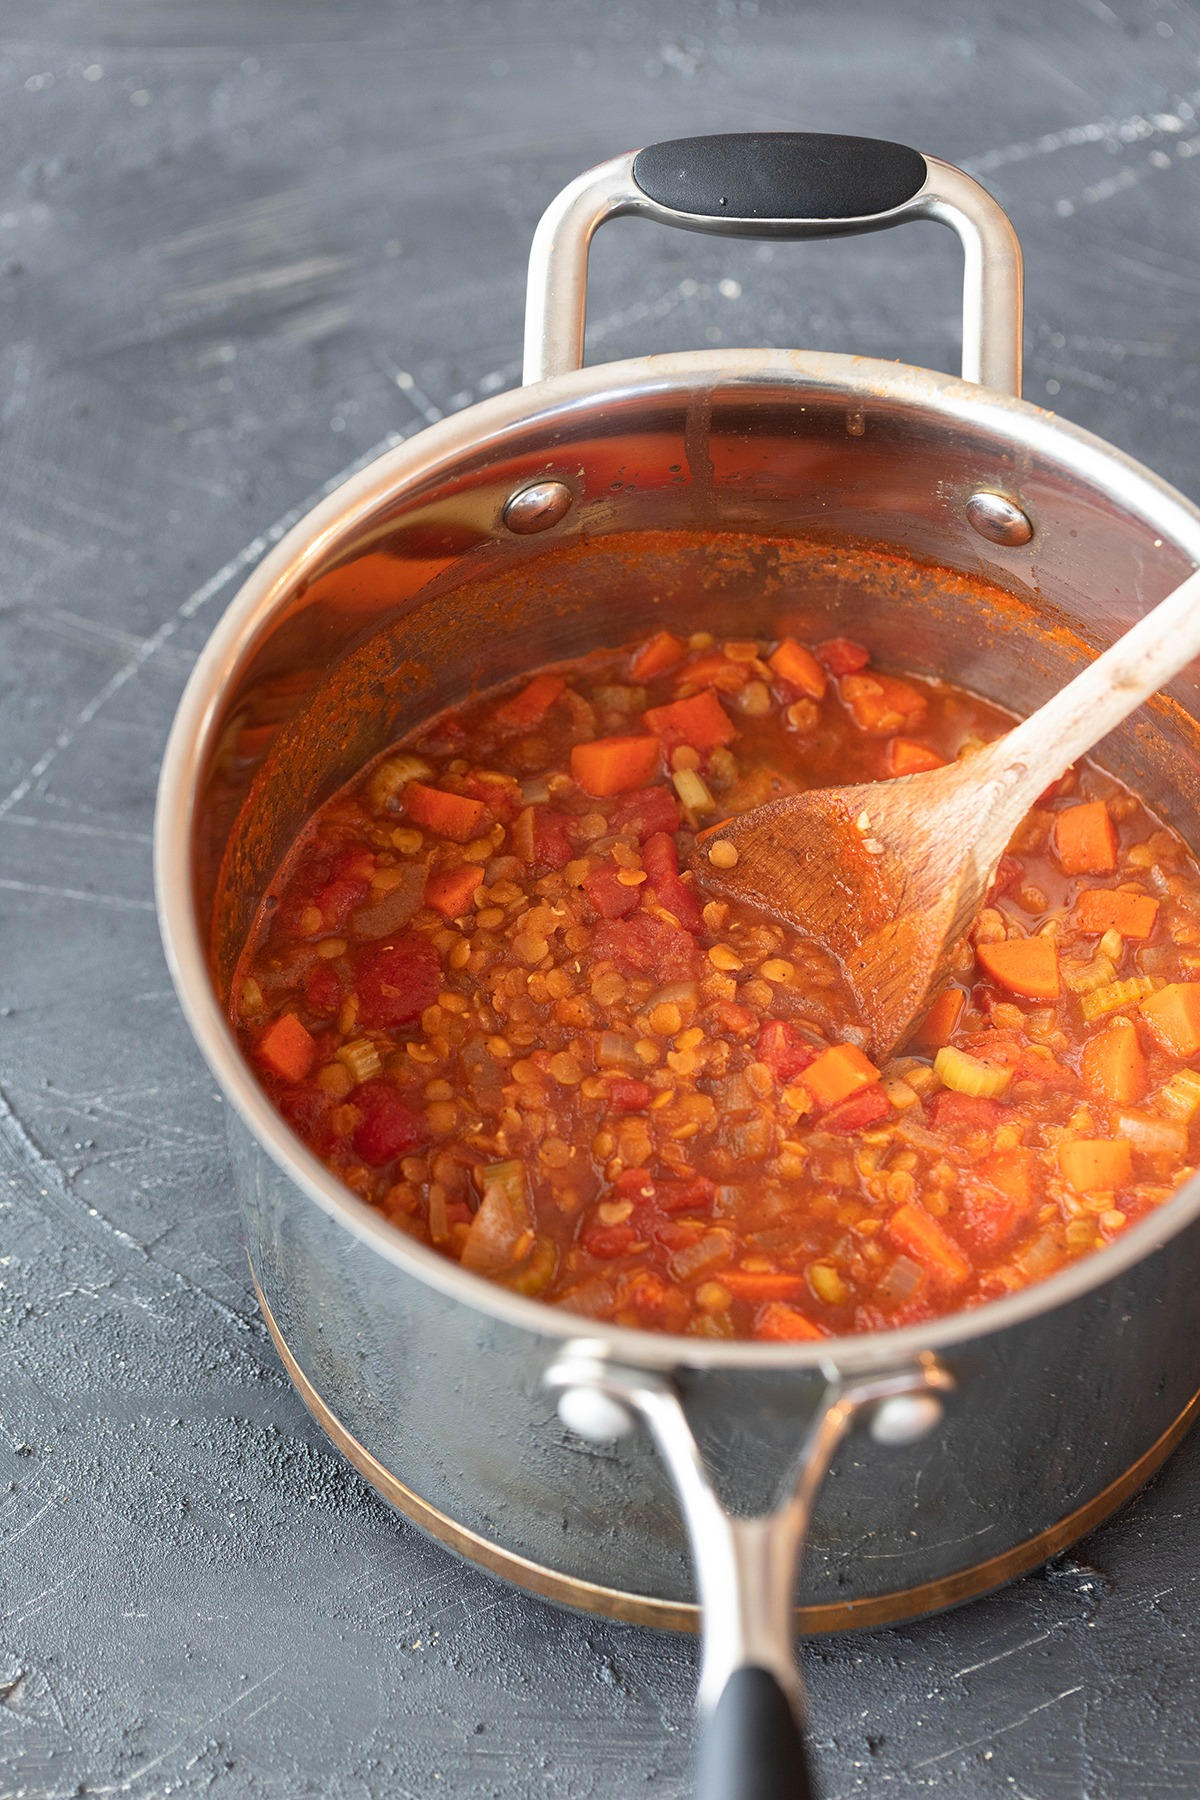 cooked spicy lentil soup in saucepan with wooden spoon